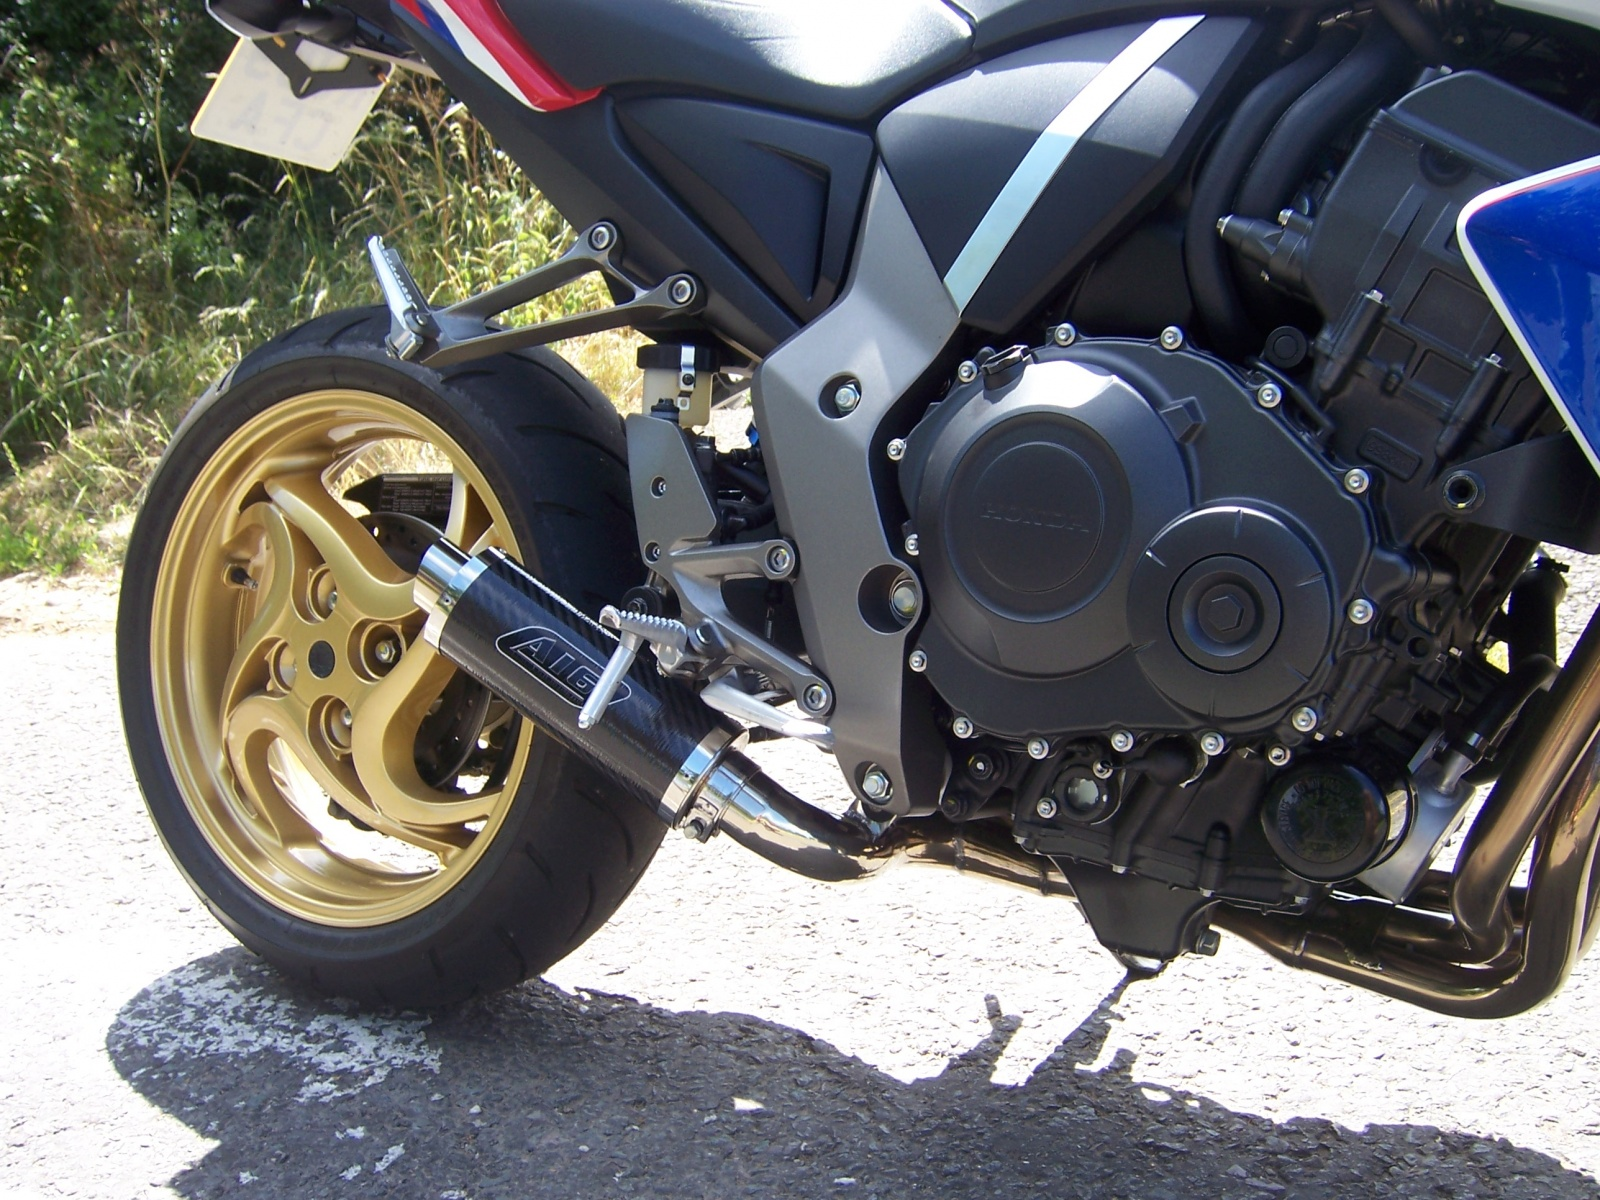 """Honda CB1000R <p>A16 Moto GP Carbon Exhaust with Polished Small Outlet<br/><br/><a href=""""https://a16roadnracesupplies.co.uk/product/a16-honda-exhausts/"""">Buy now!</a></p>"""